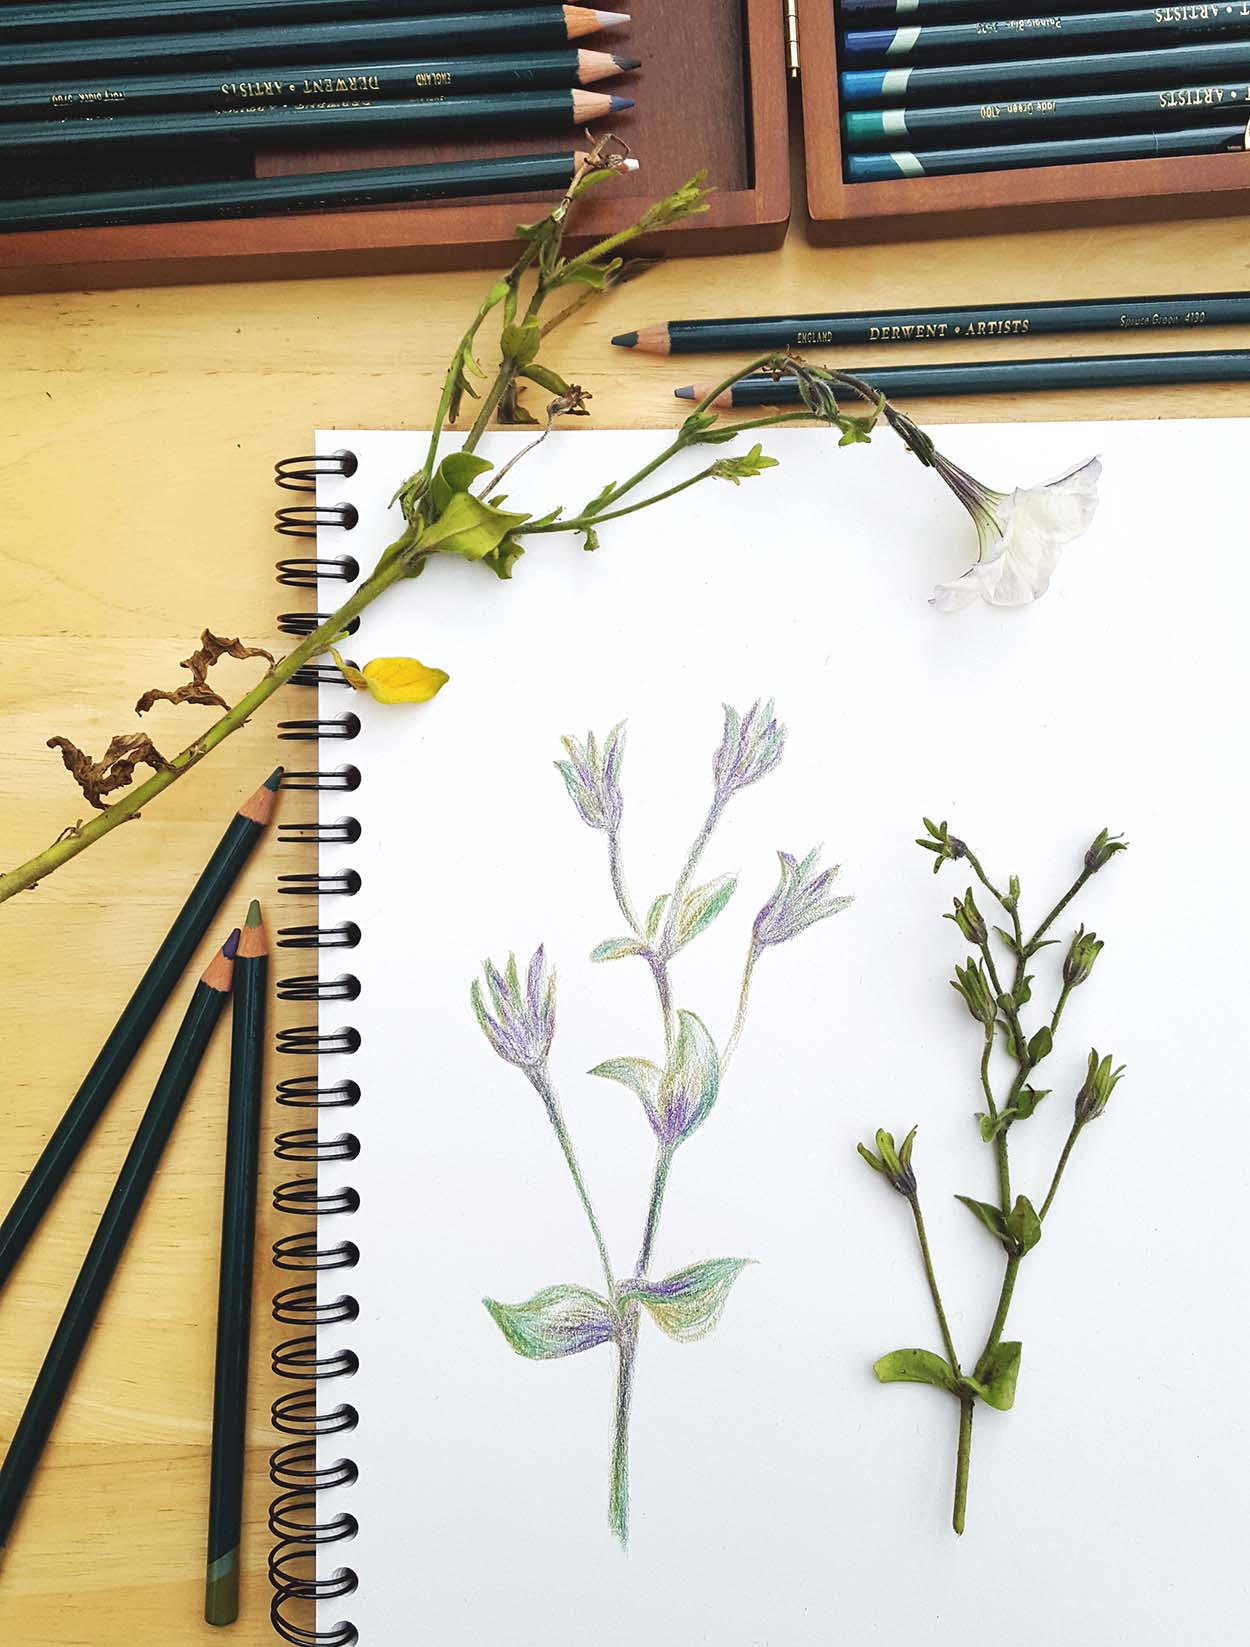 Finding inspiration: sketching flowers